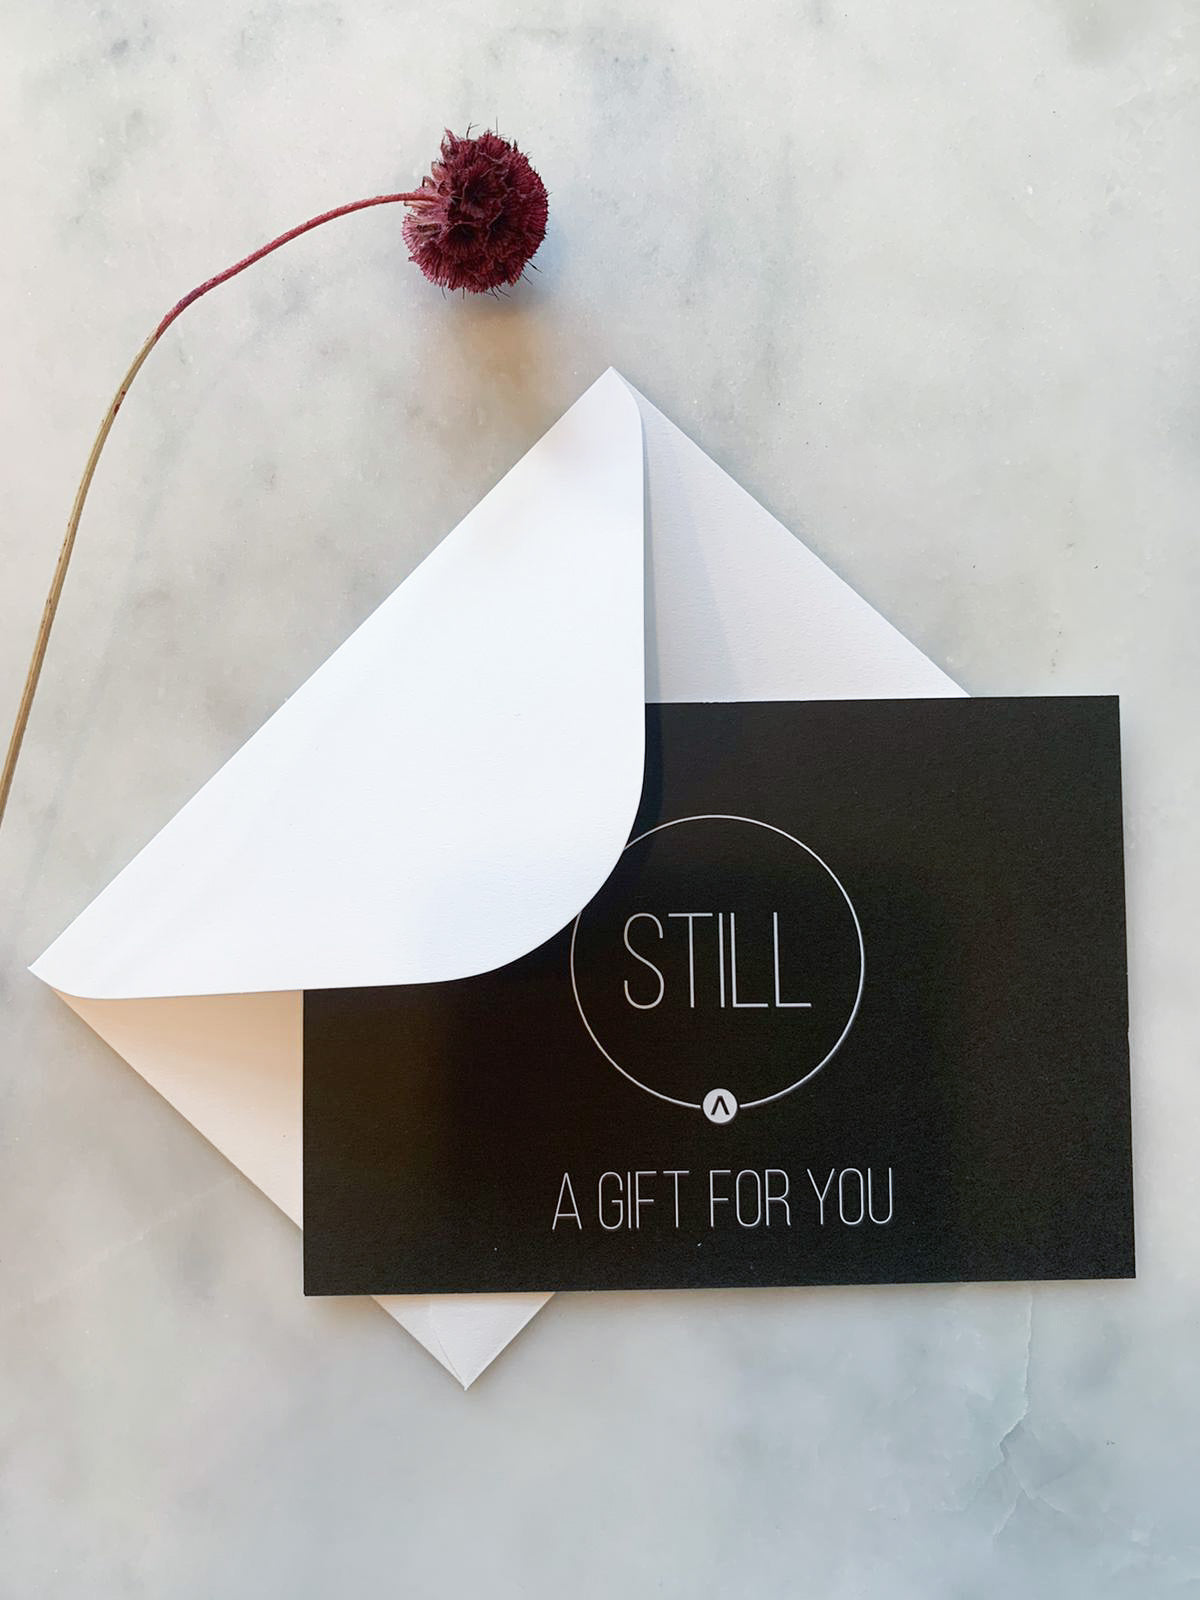 STILL London - E-Gift Cards